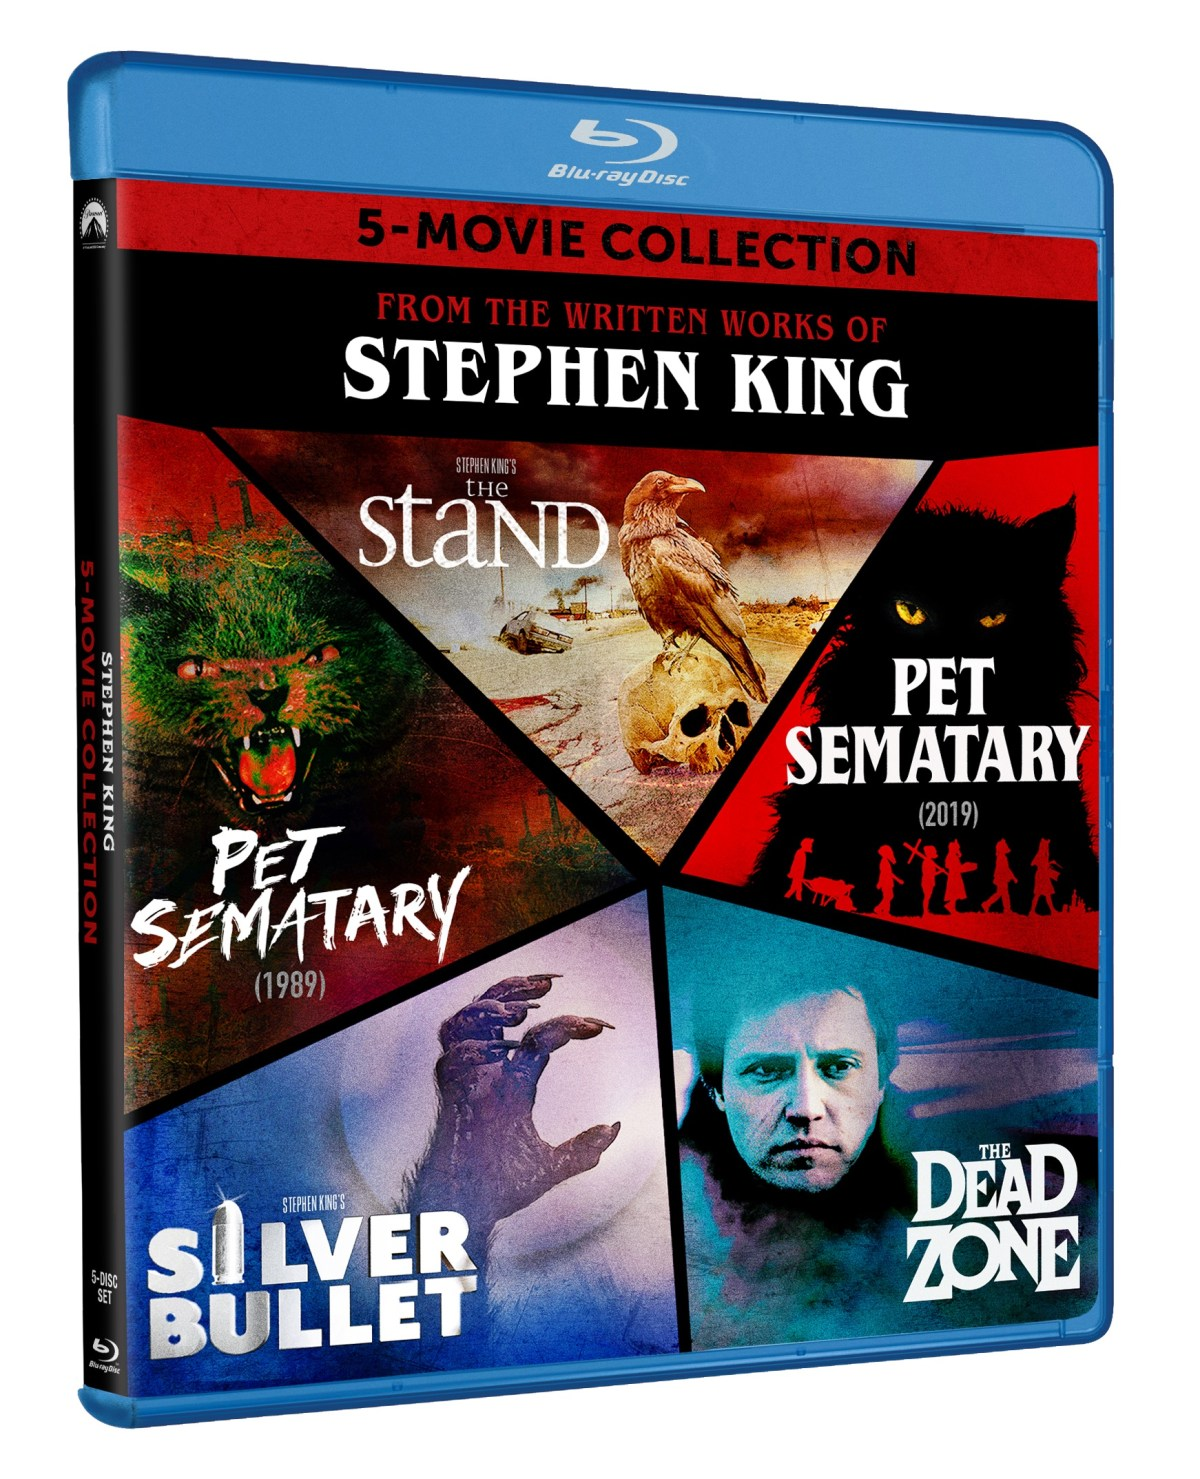 From The Written Works Of Stephen King; The 5-Movie Collection Arrives On Blu-ray September 15, 2020 From Paramount 14